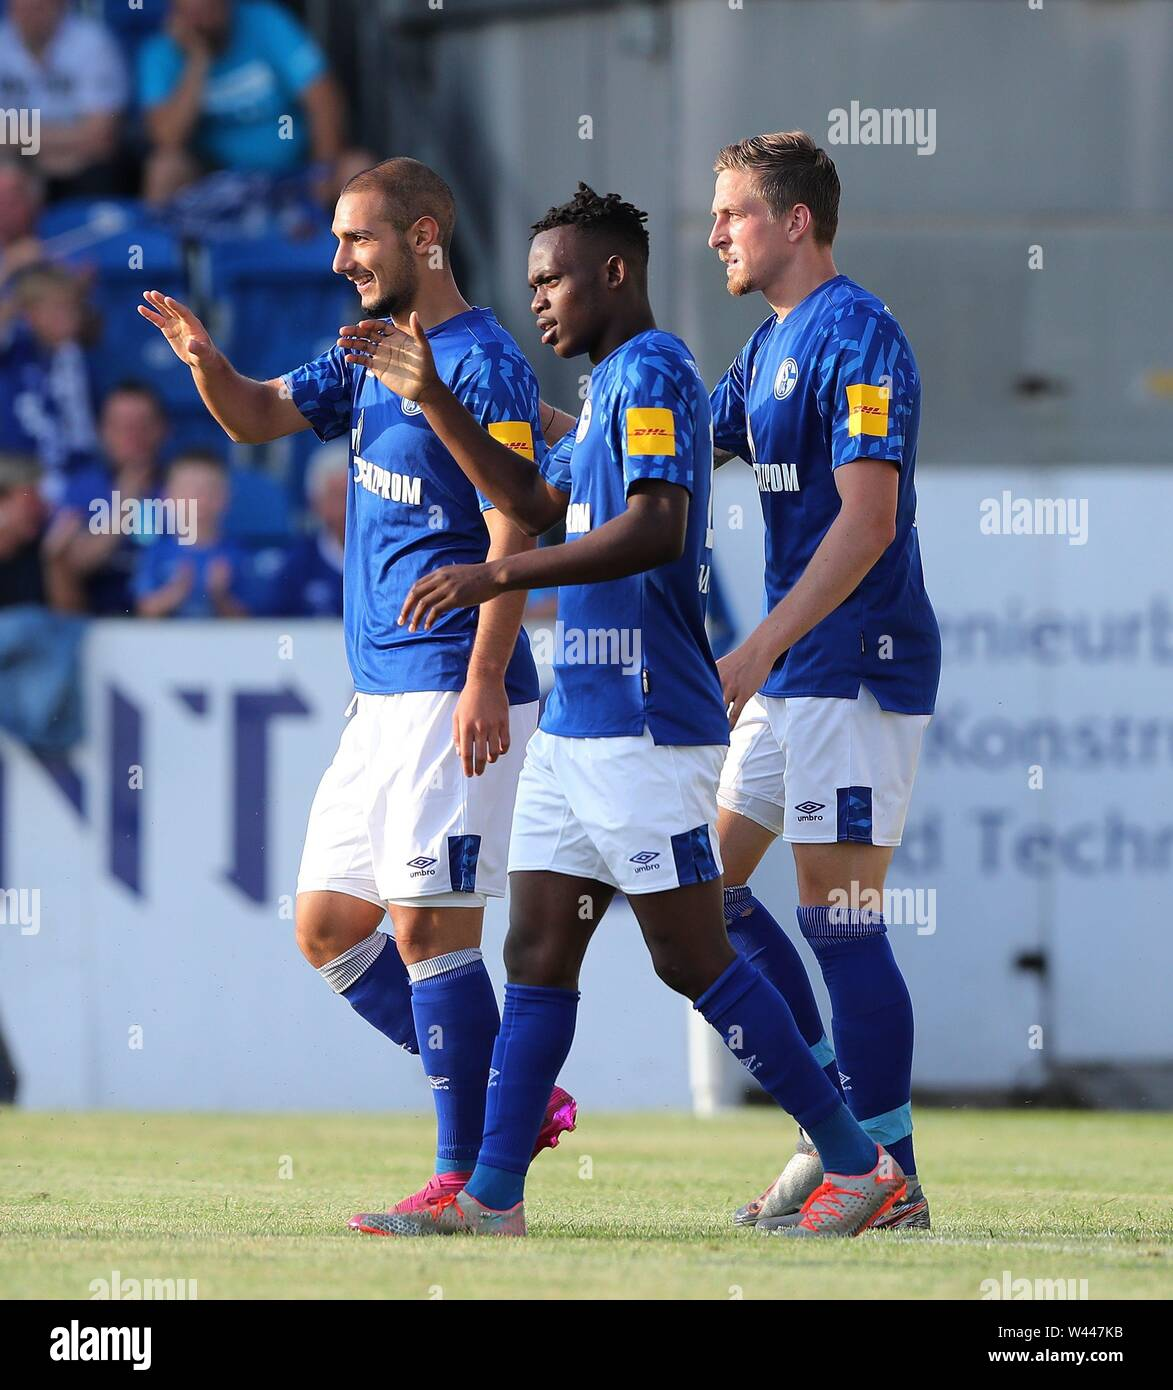 Lotte, Deutschland. 19th July, 2019. firo: 19.07.2019, football, 1.Bundesliga, season 2019/2020, friendly match, FC Schalke 04 - Norwich City jubilation Schalke to MATONDO, withte with KUTUCU and OCZIPKA, right | usage worldwide Credit: dpa/Alamy Live News - Stock Image